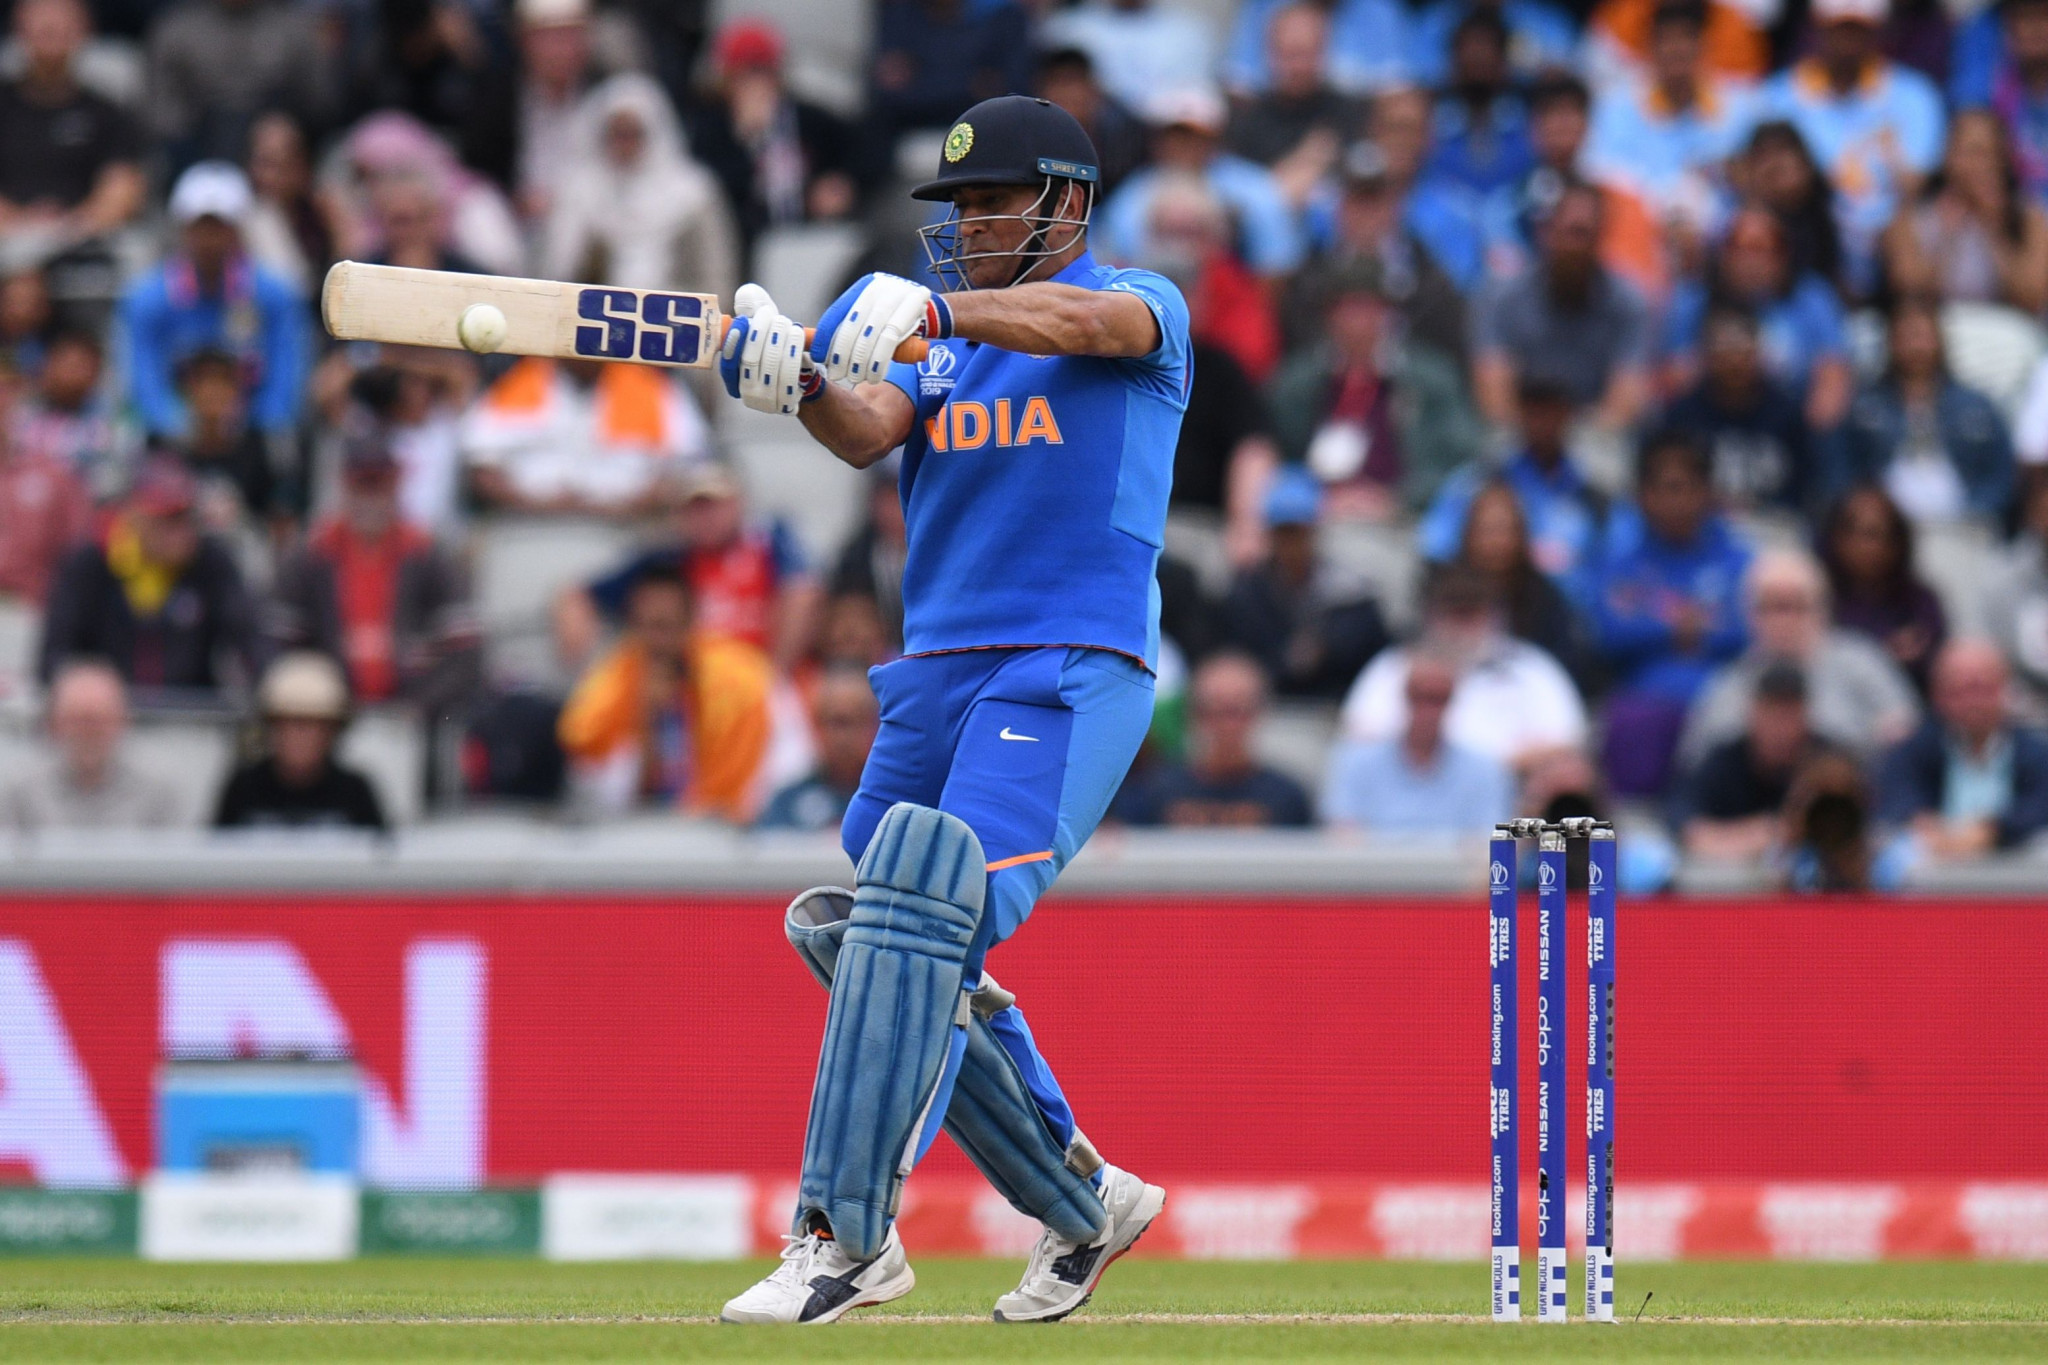 The International Cricket Council has signed a deal with Facebook in India ©Getty Images